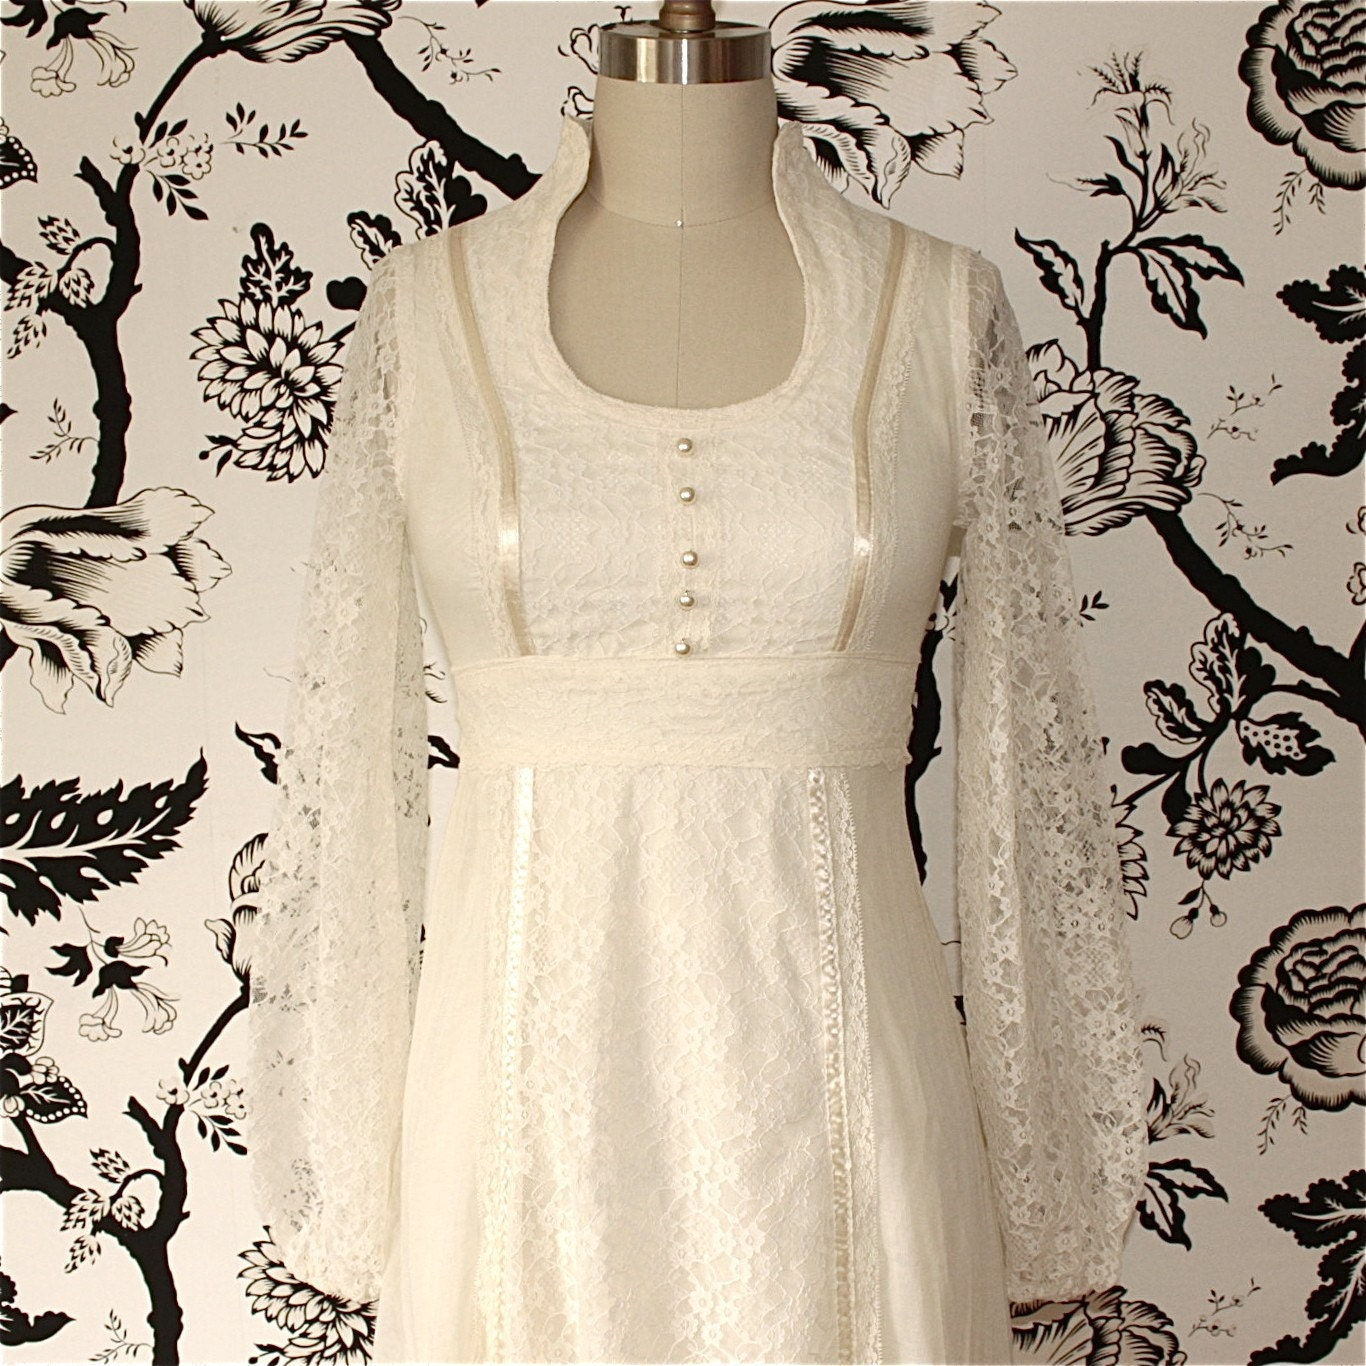 Cream cotton lace vintage long sleeve wedding dress for Long vintage wedding dresses